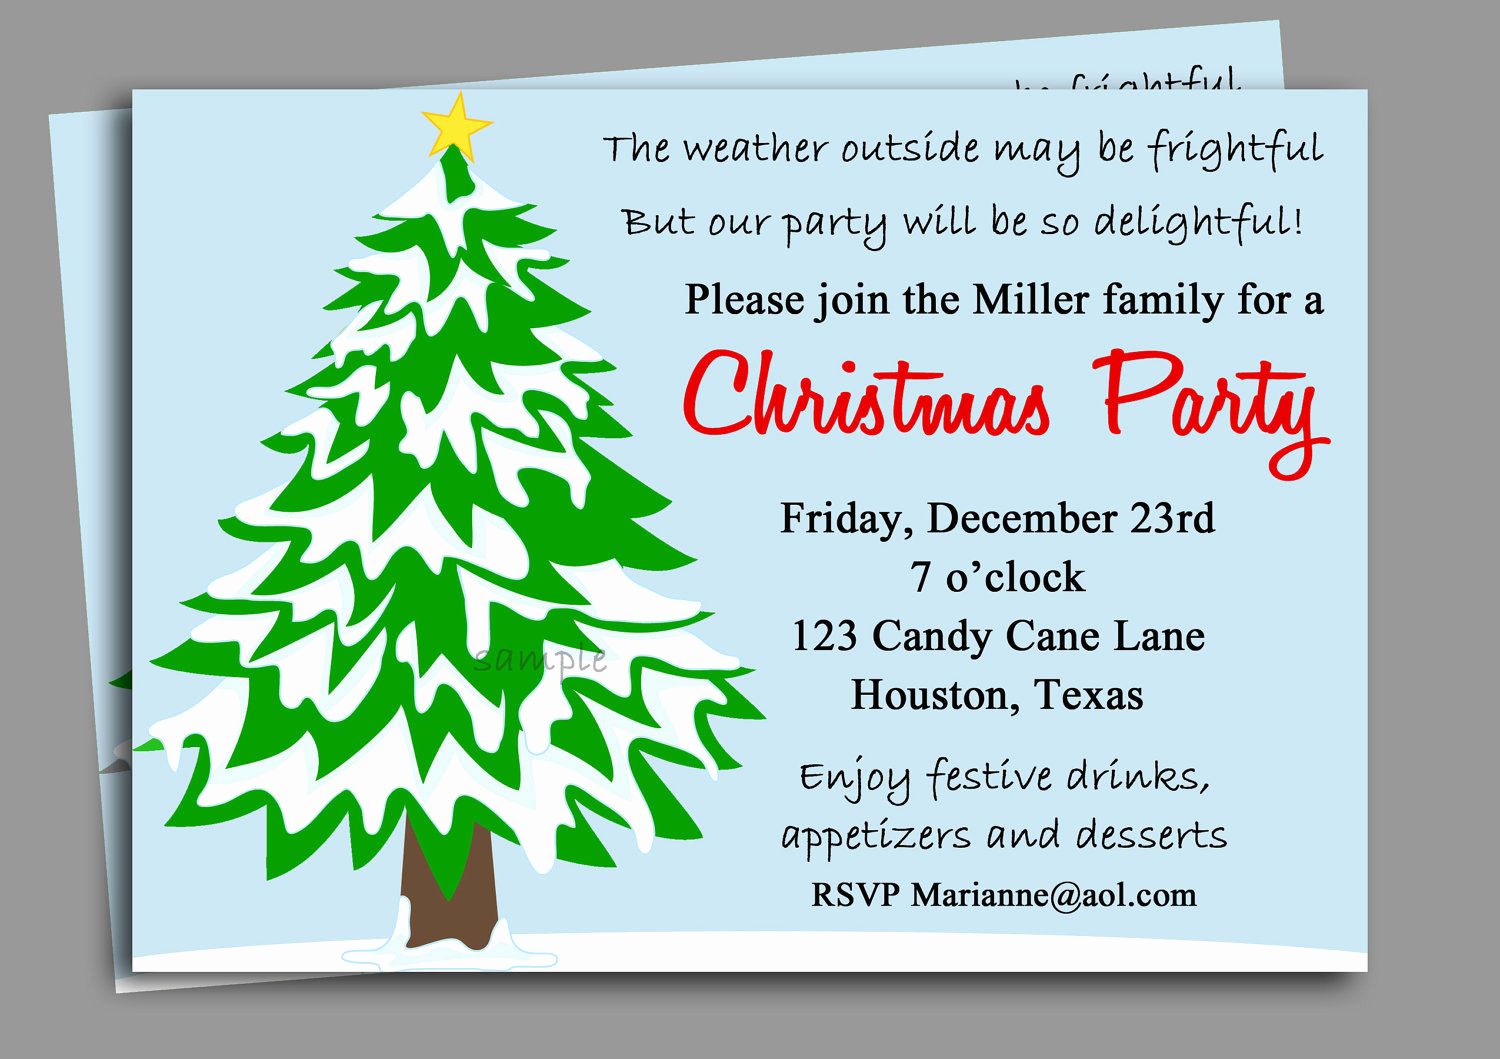 Office Holiday Party Invitation Wording Unique Christmas Party Invitation Printable Winter Wonderland